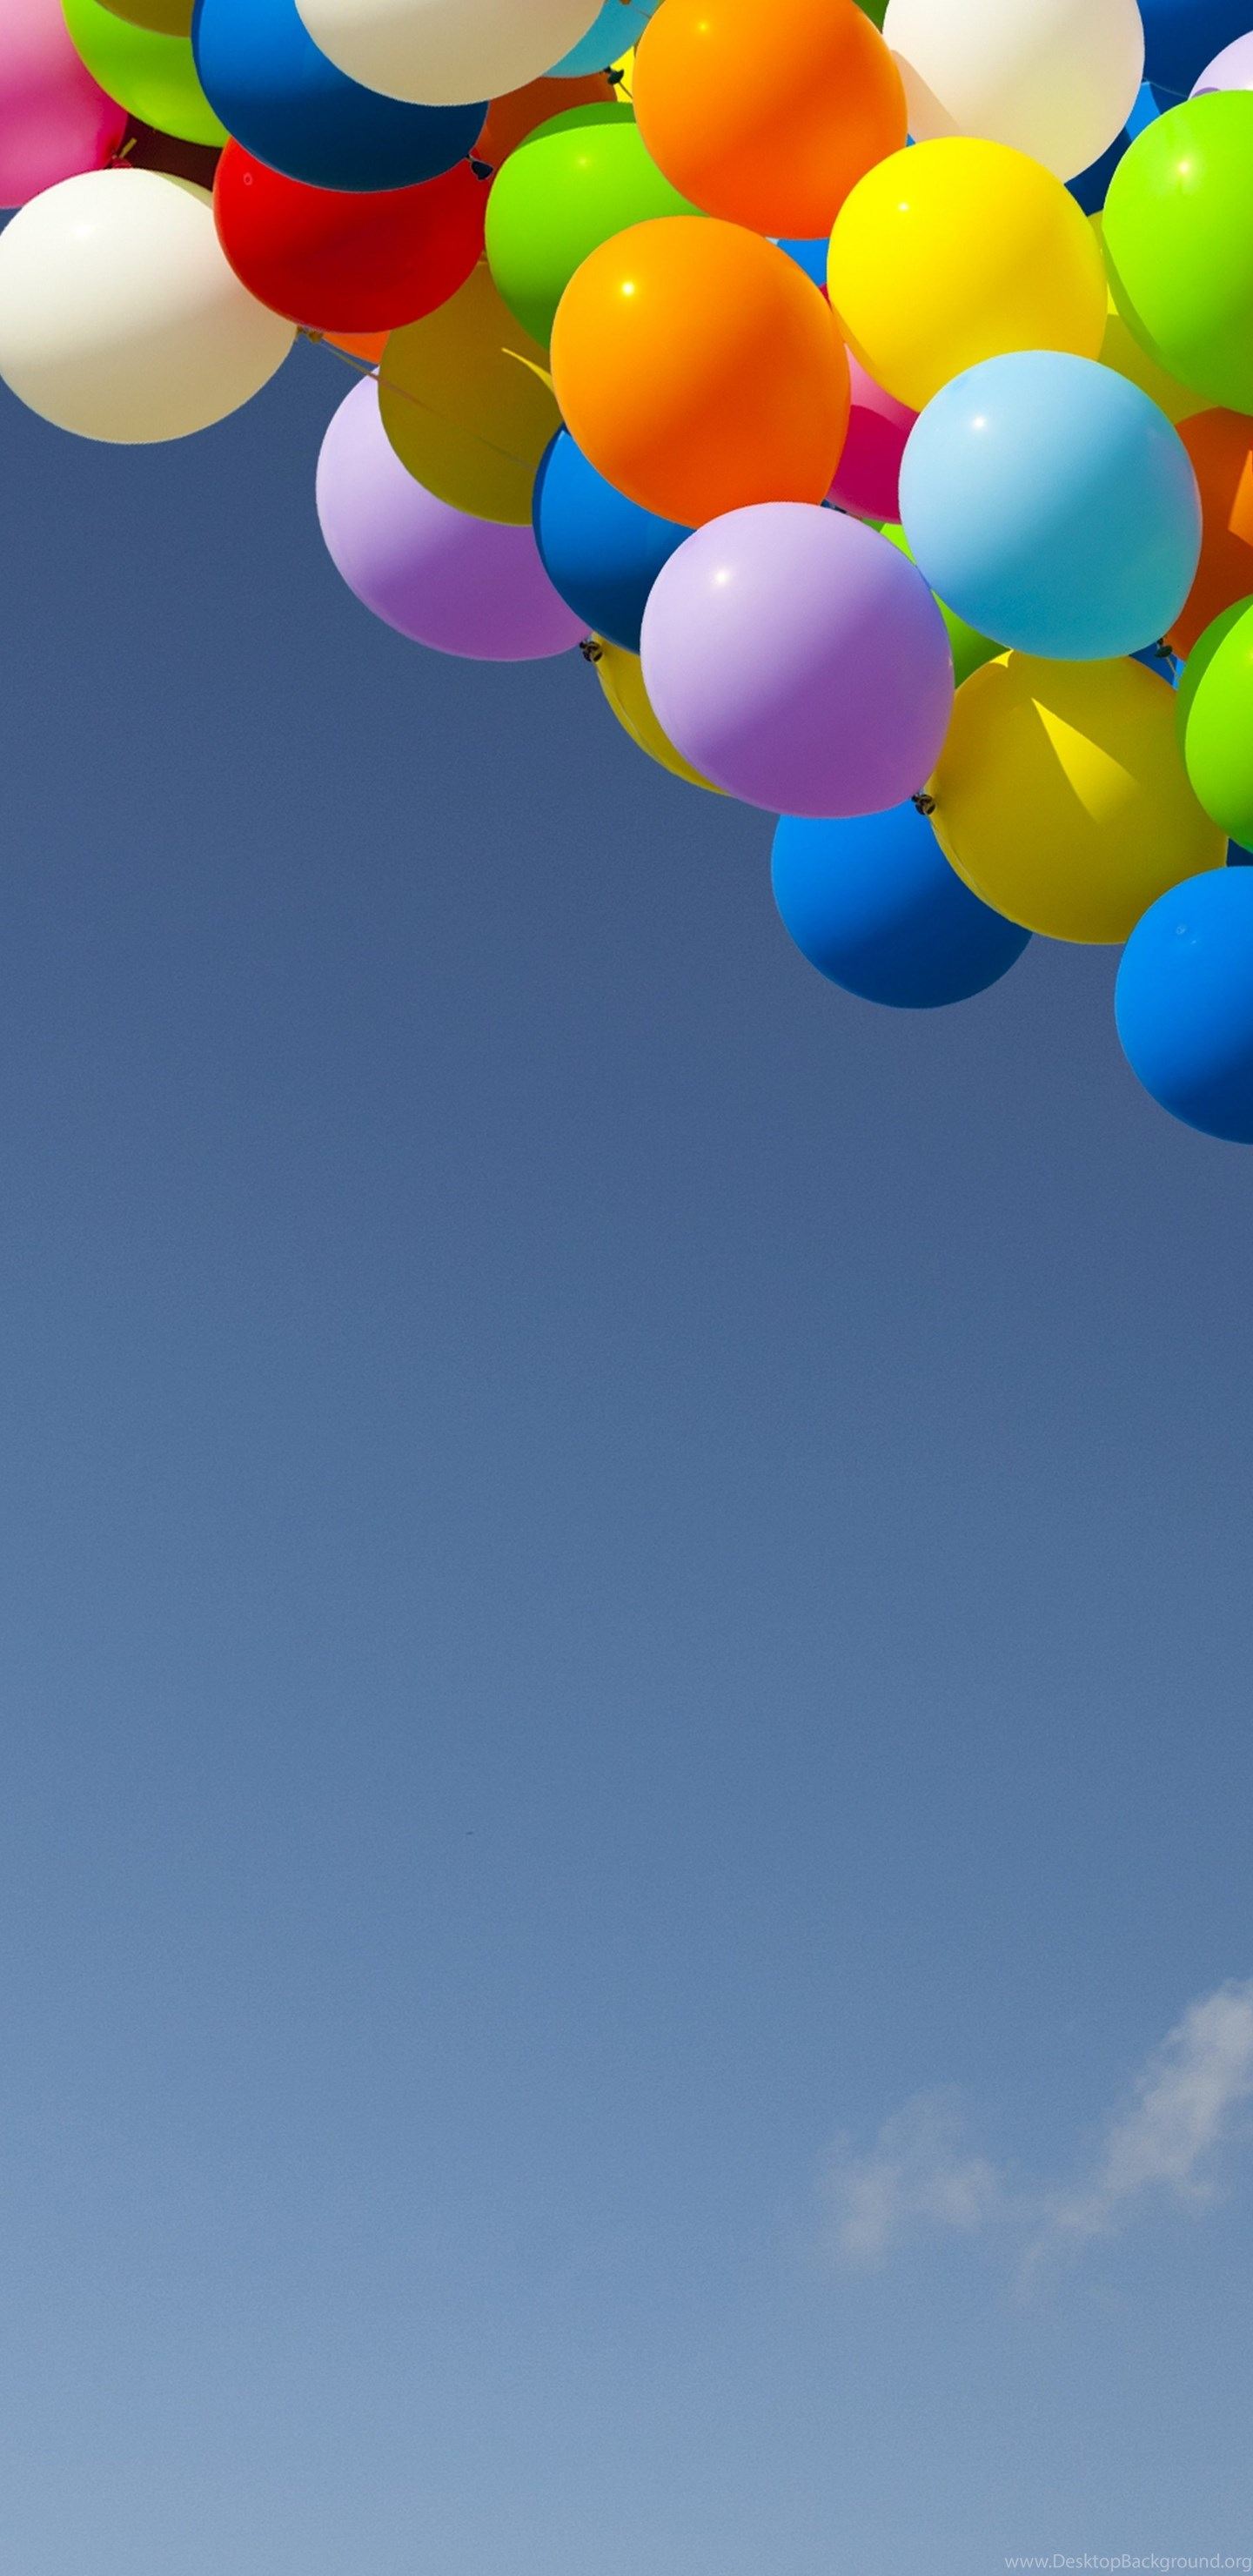 686441 hd happy people with balloon wallpapers ultra hd full